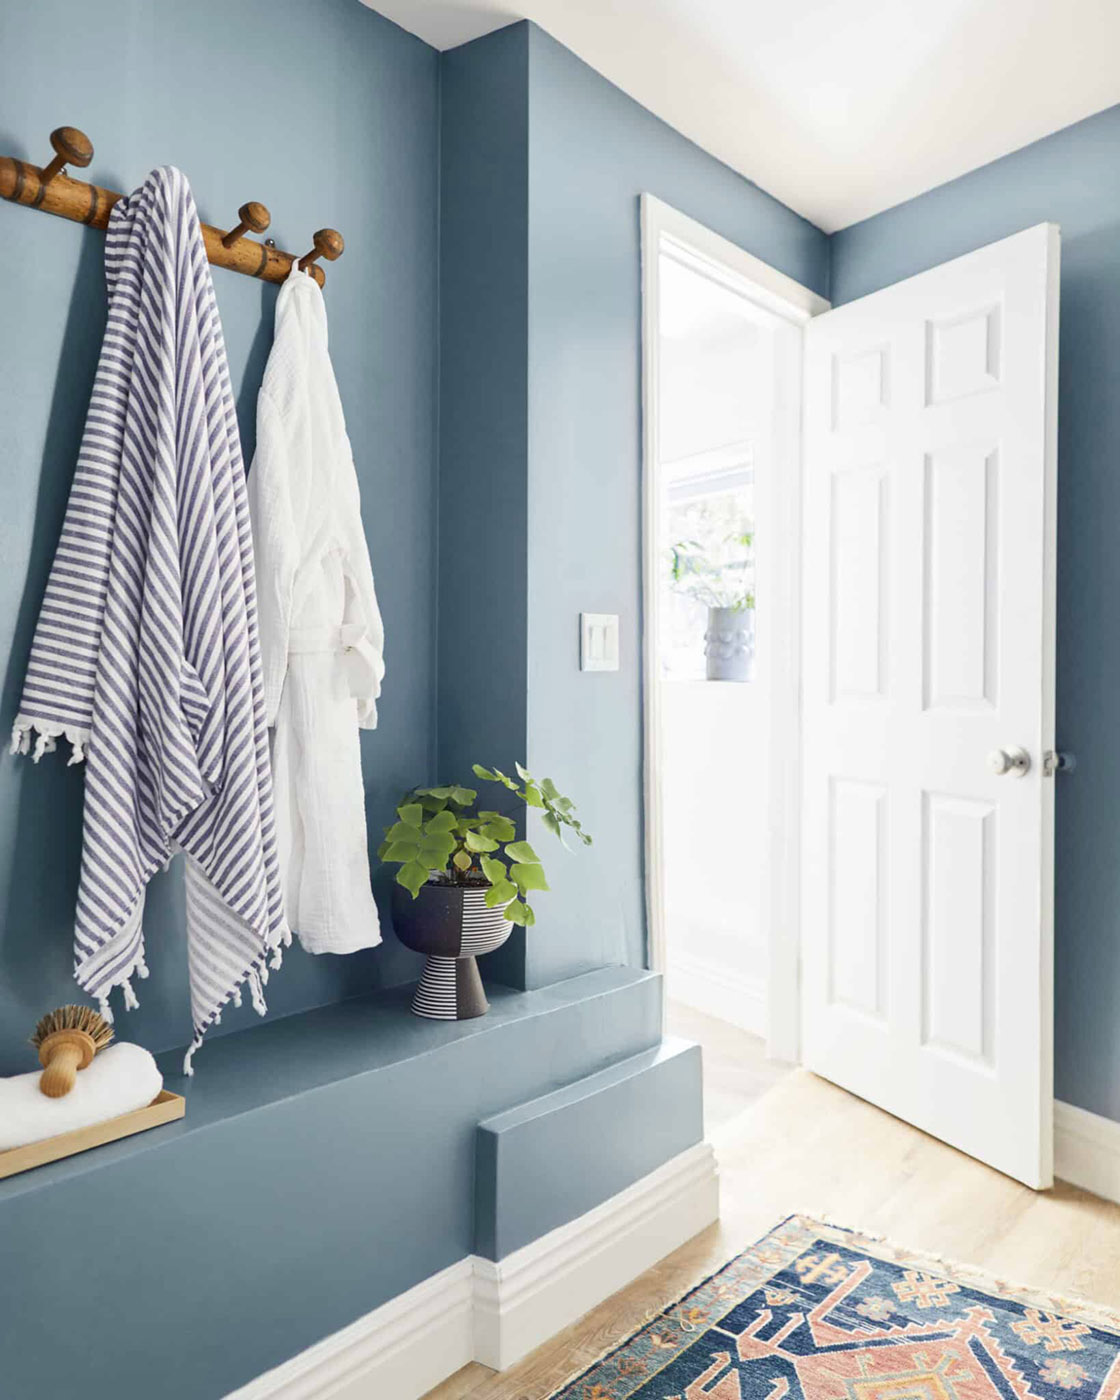 Easy DIY To Add a Pop of Color To Your Bathroom